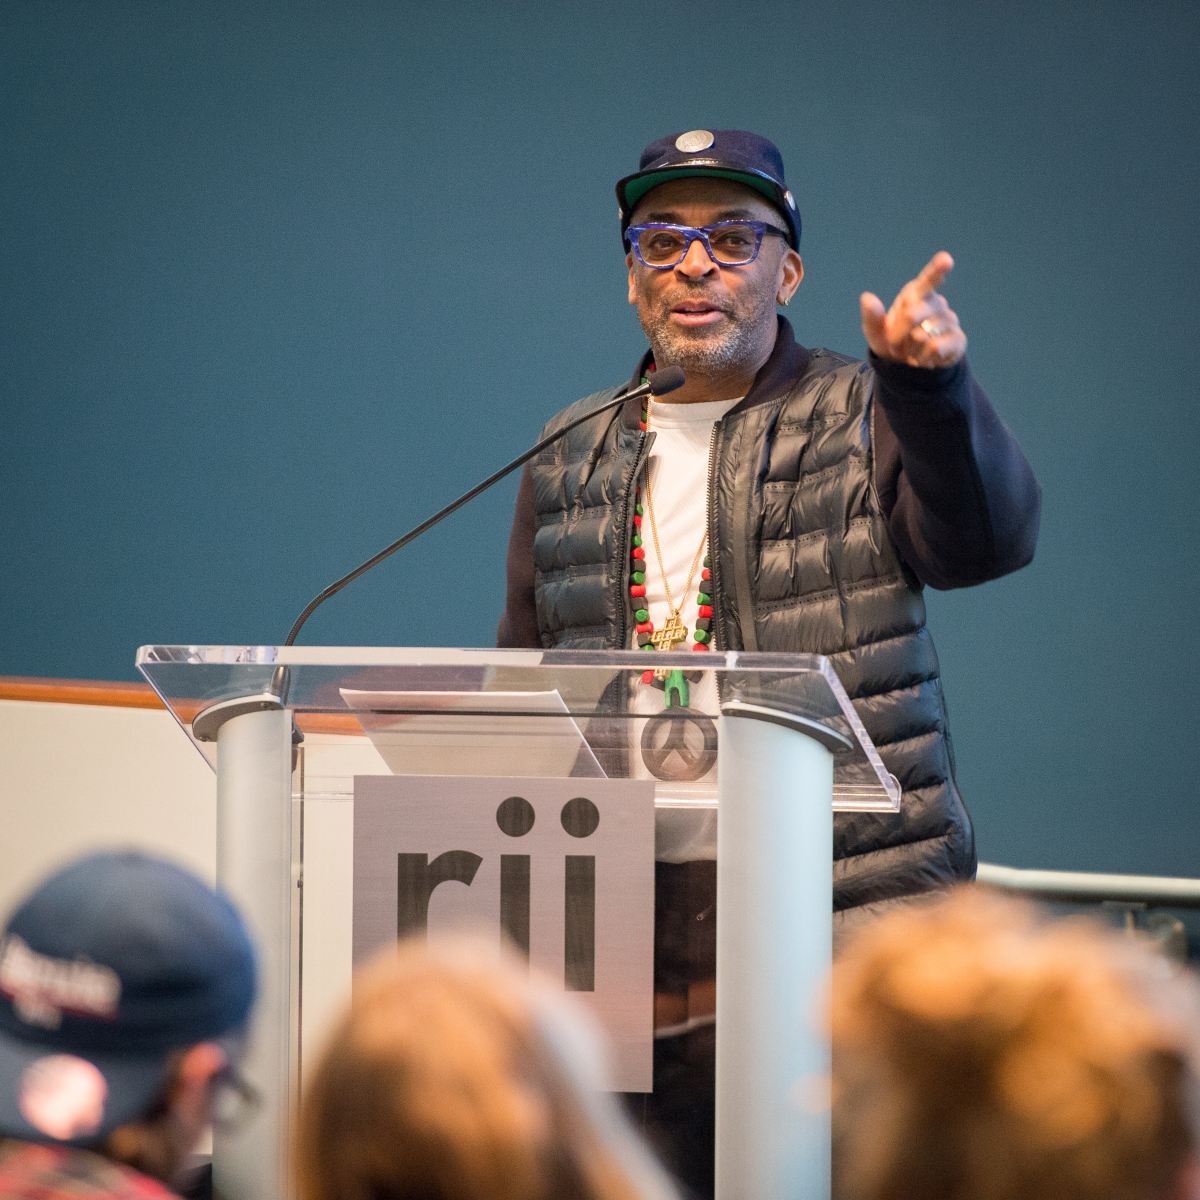 Filmmaker Spike Lee. University of Missouri School of Journalism.